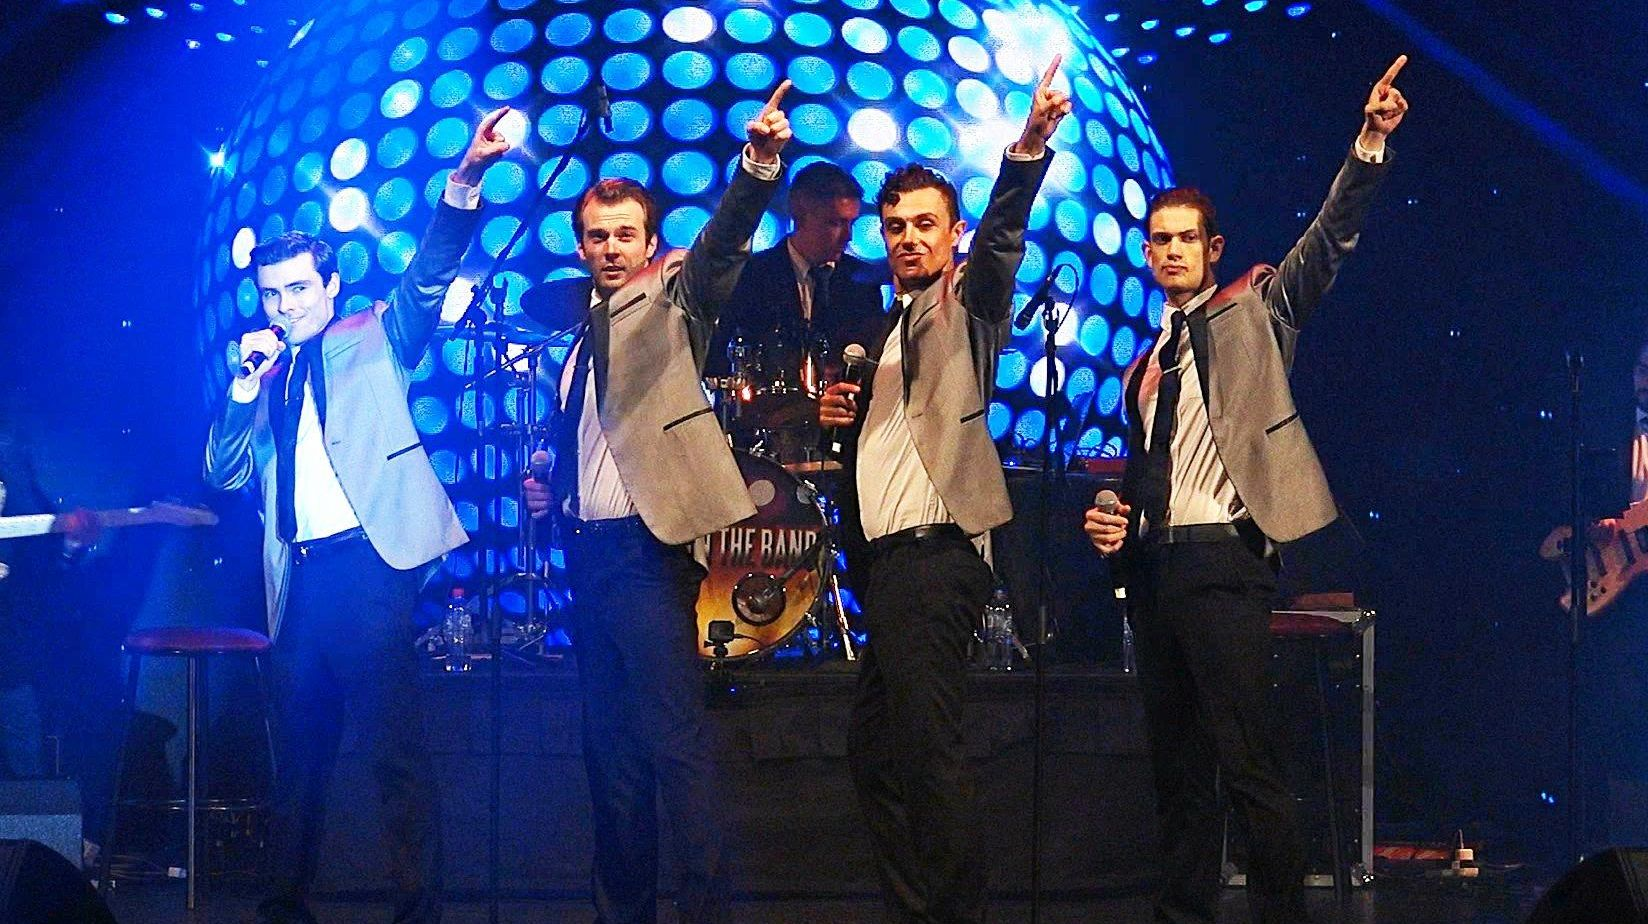 POLISH THOSE DANCING SHOES: Sing along to 50 years of classic music hits from artists such as Elvis, Queen, The Beatles, The BeeGees, Jackson 5 and Australian icons including John Farnham and ACDC.